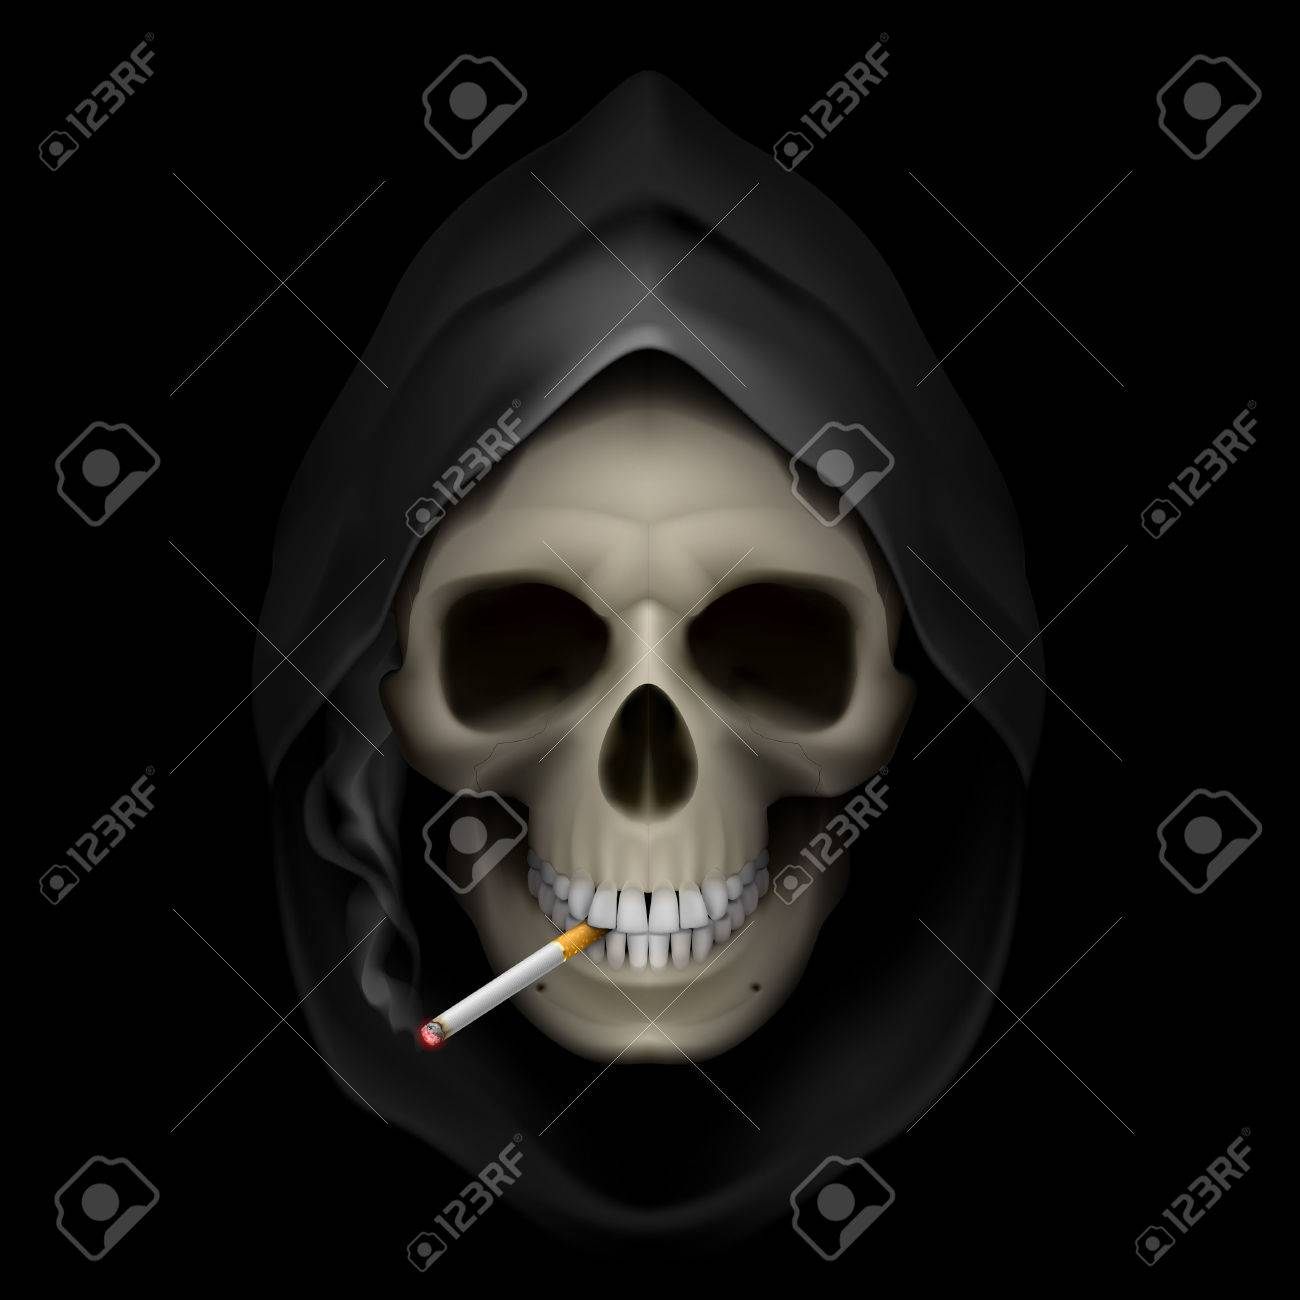 Image of death with cigarette. Stop smoking, it kills. Stock Vector - 24120472